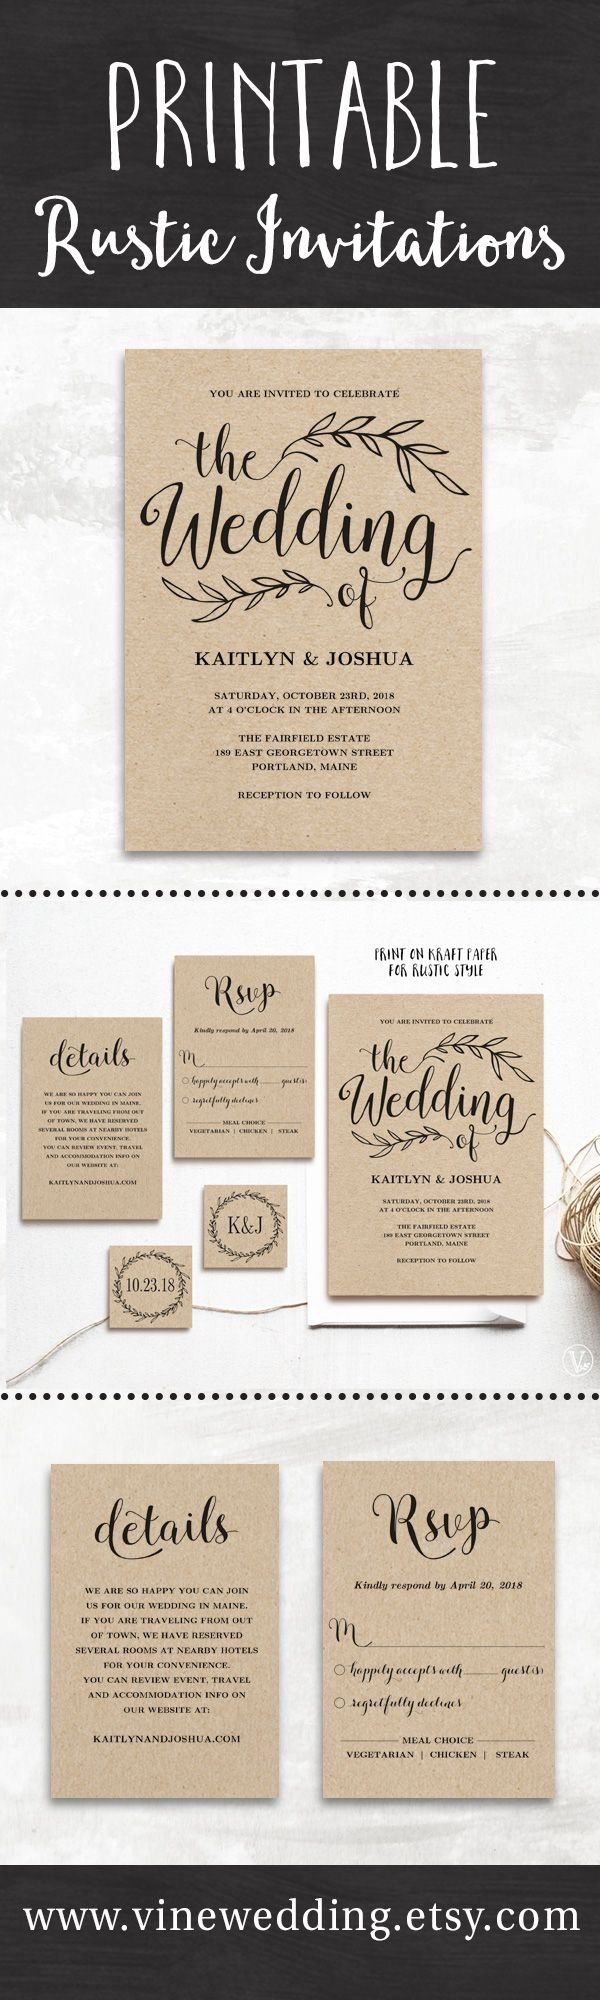 188 Best Printables Images On Pinterest Invitation Cards Invites